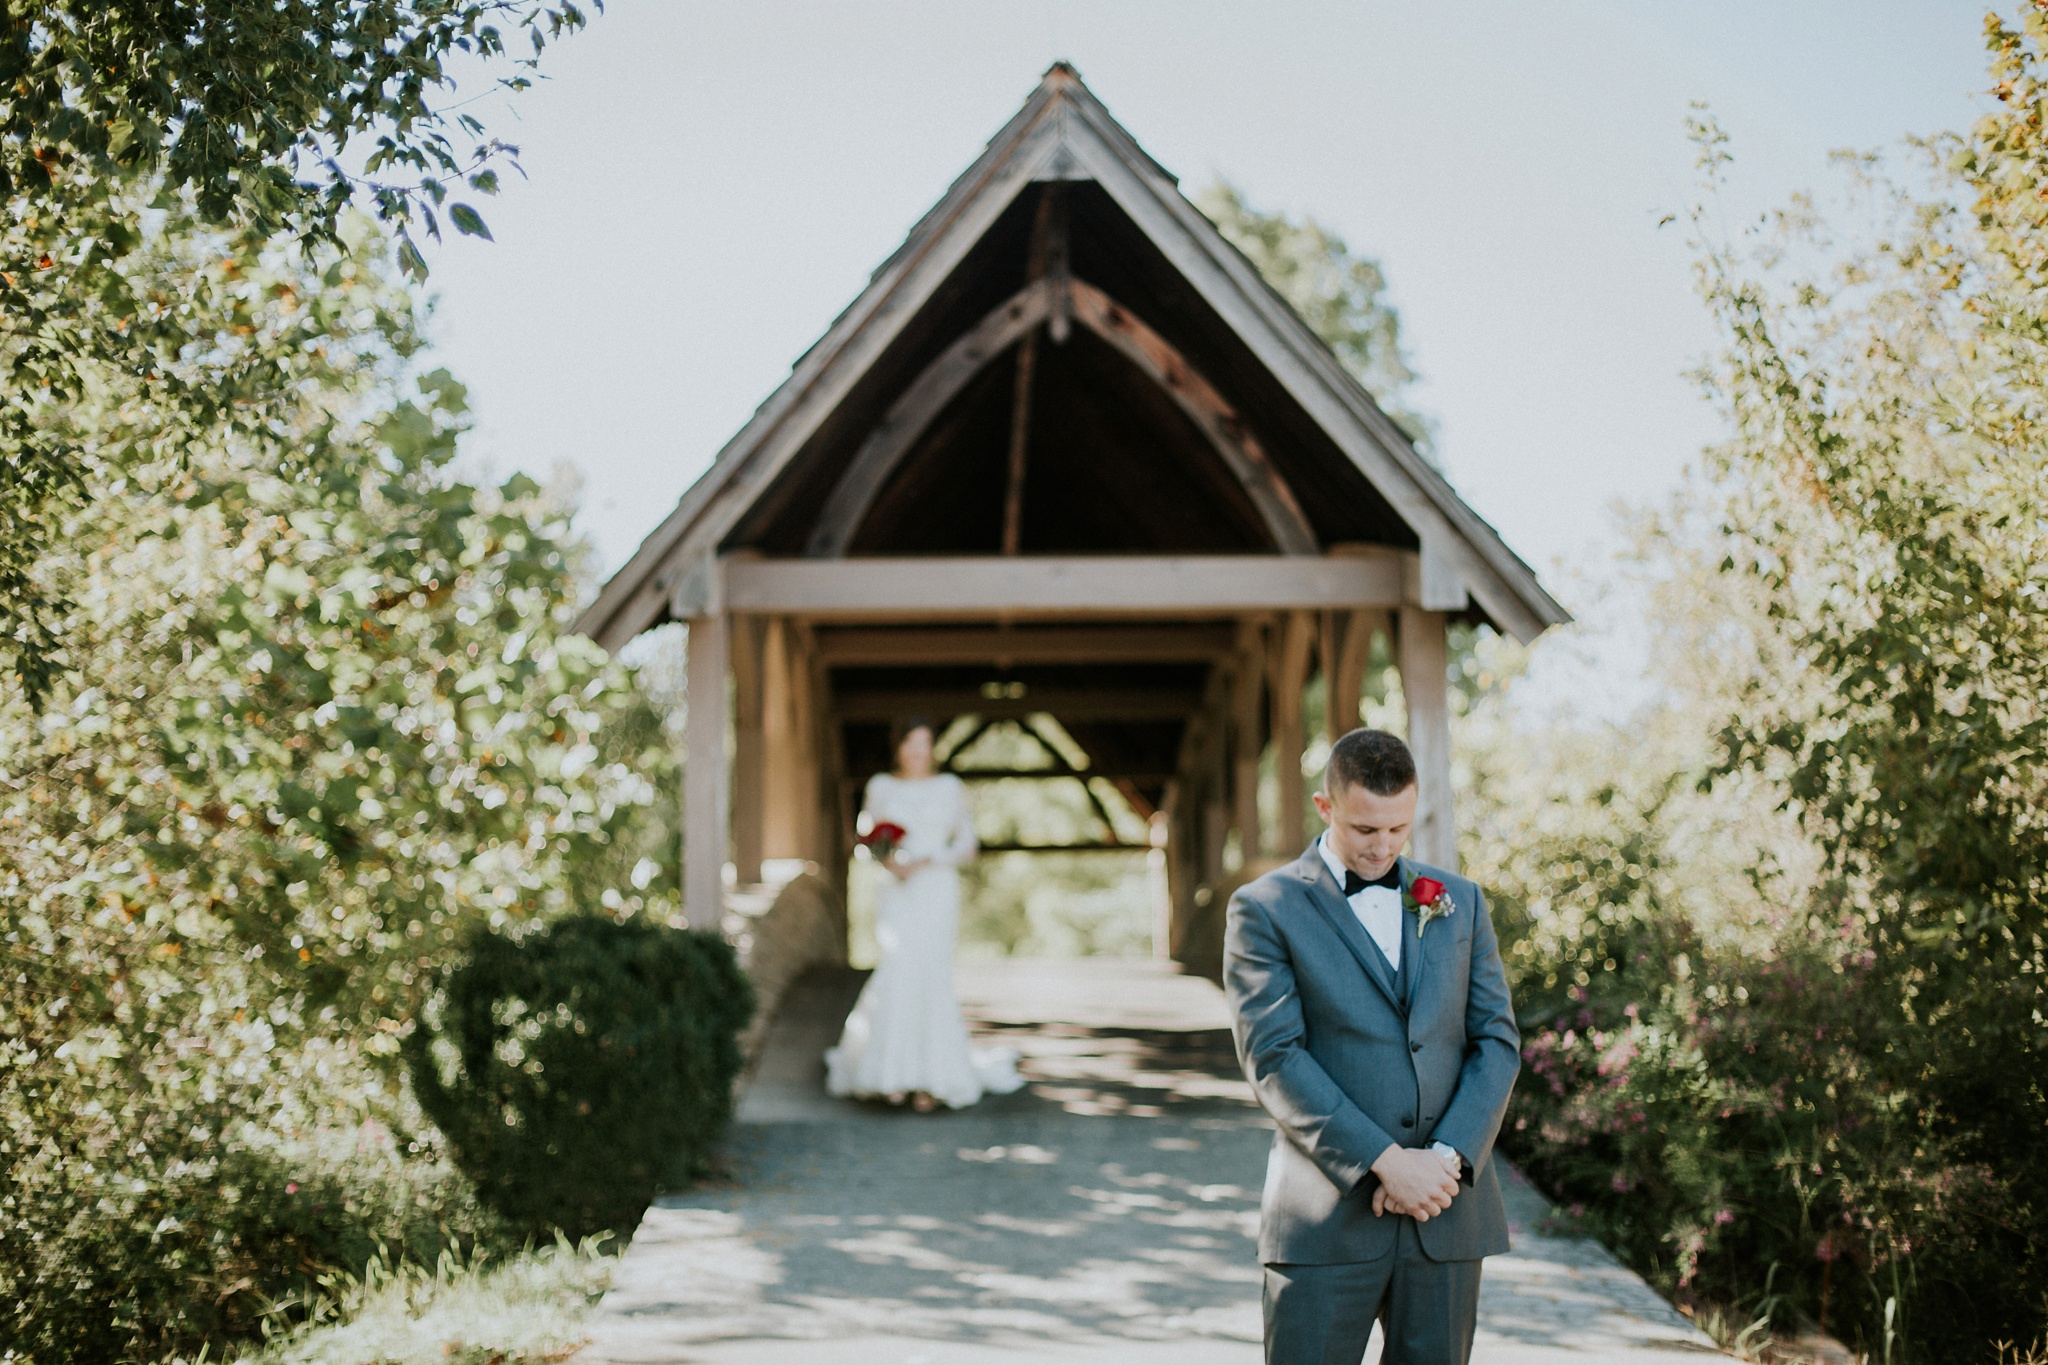 Fuzzy Zoeller's Covered Bridge Wedding